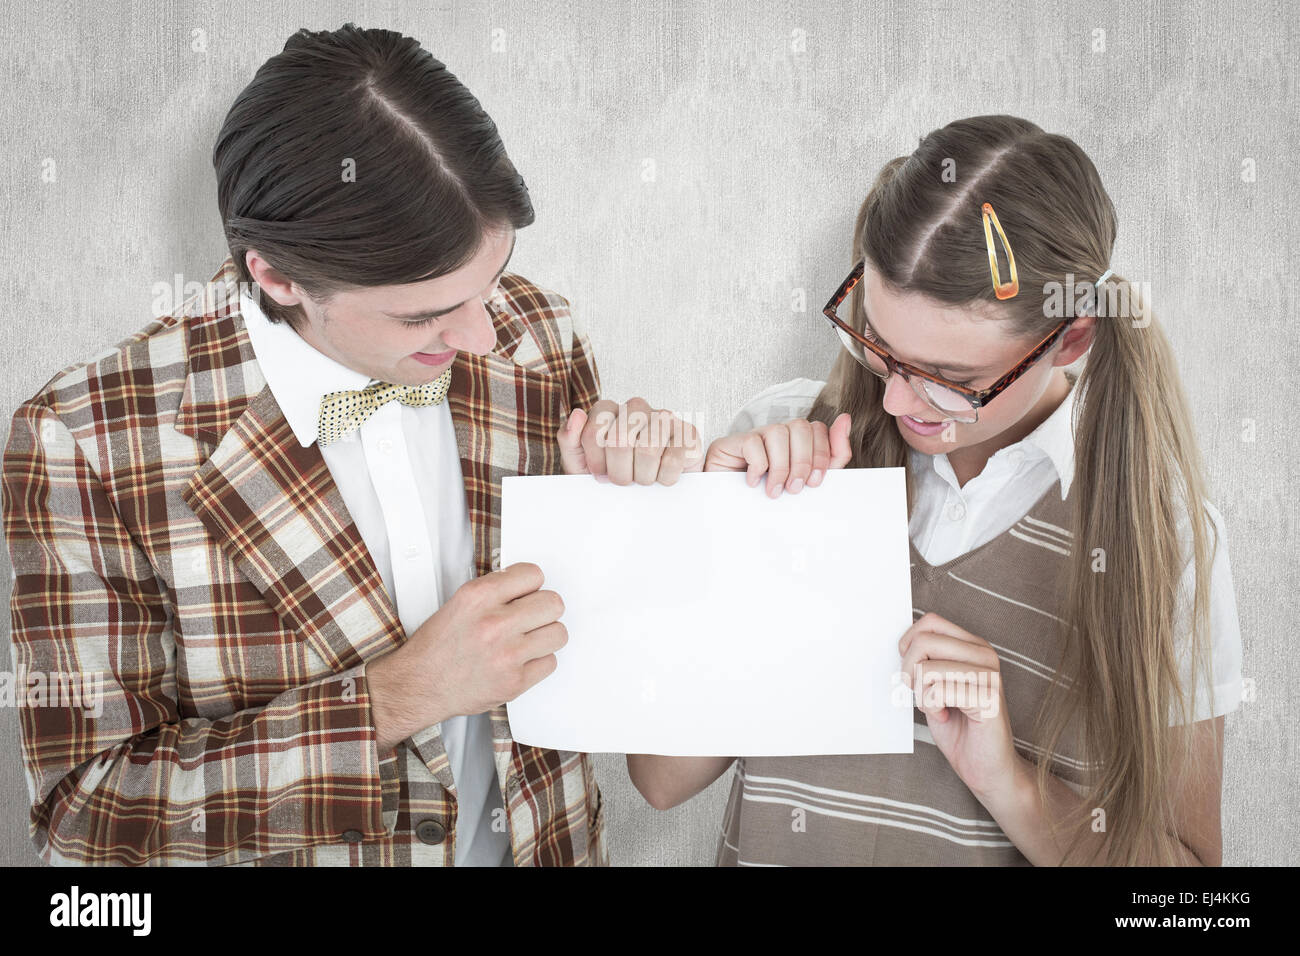 Composite image of geeky hipsters holding a poster - Stock Image